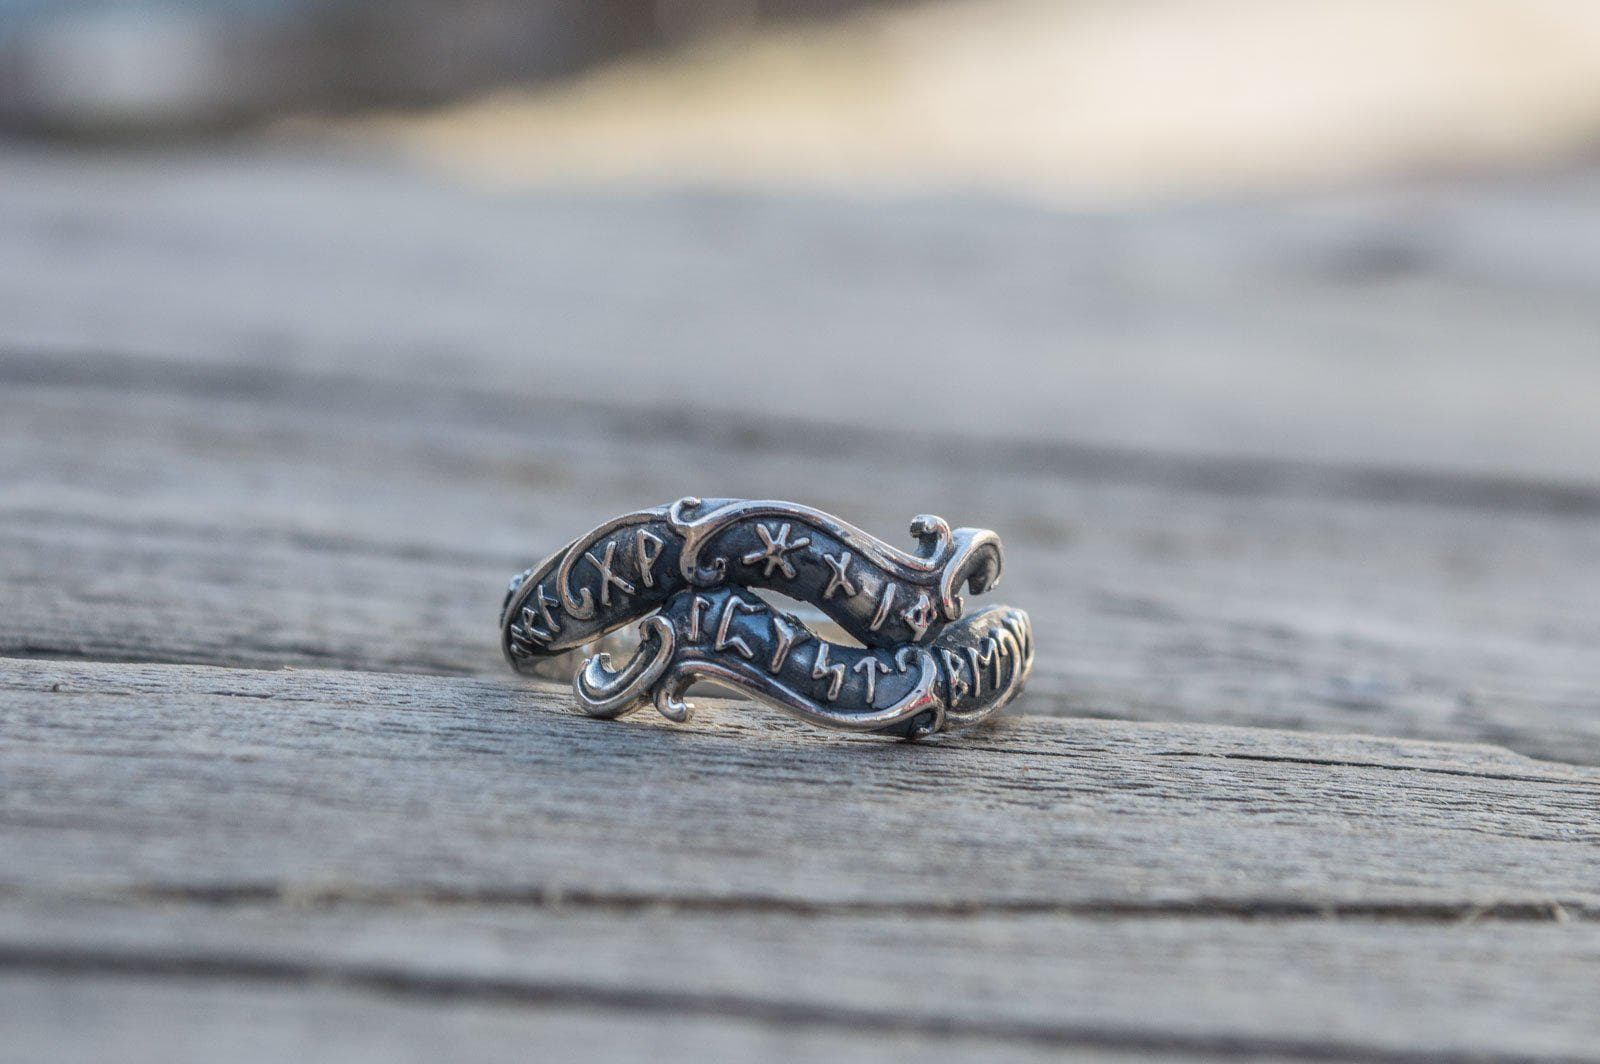 Rings Vikings Ouroboros Ring with Runes Sterling Silver Handmade Ring Ancient Treasures Ancientreasures Viking Odin Thor Mjolnir Celtic Ancient Egypt Norse Norse Mythology